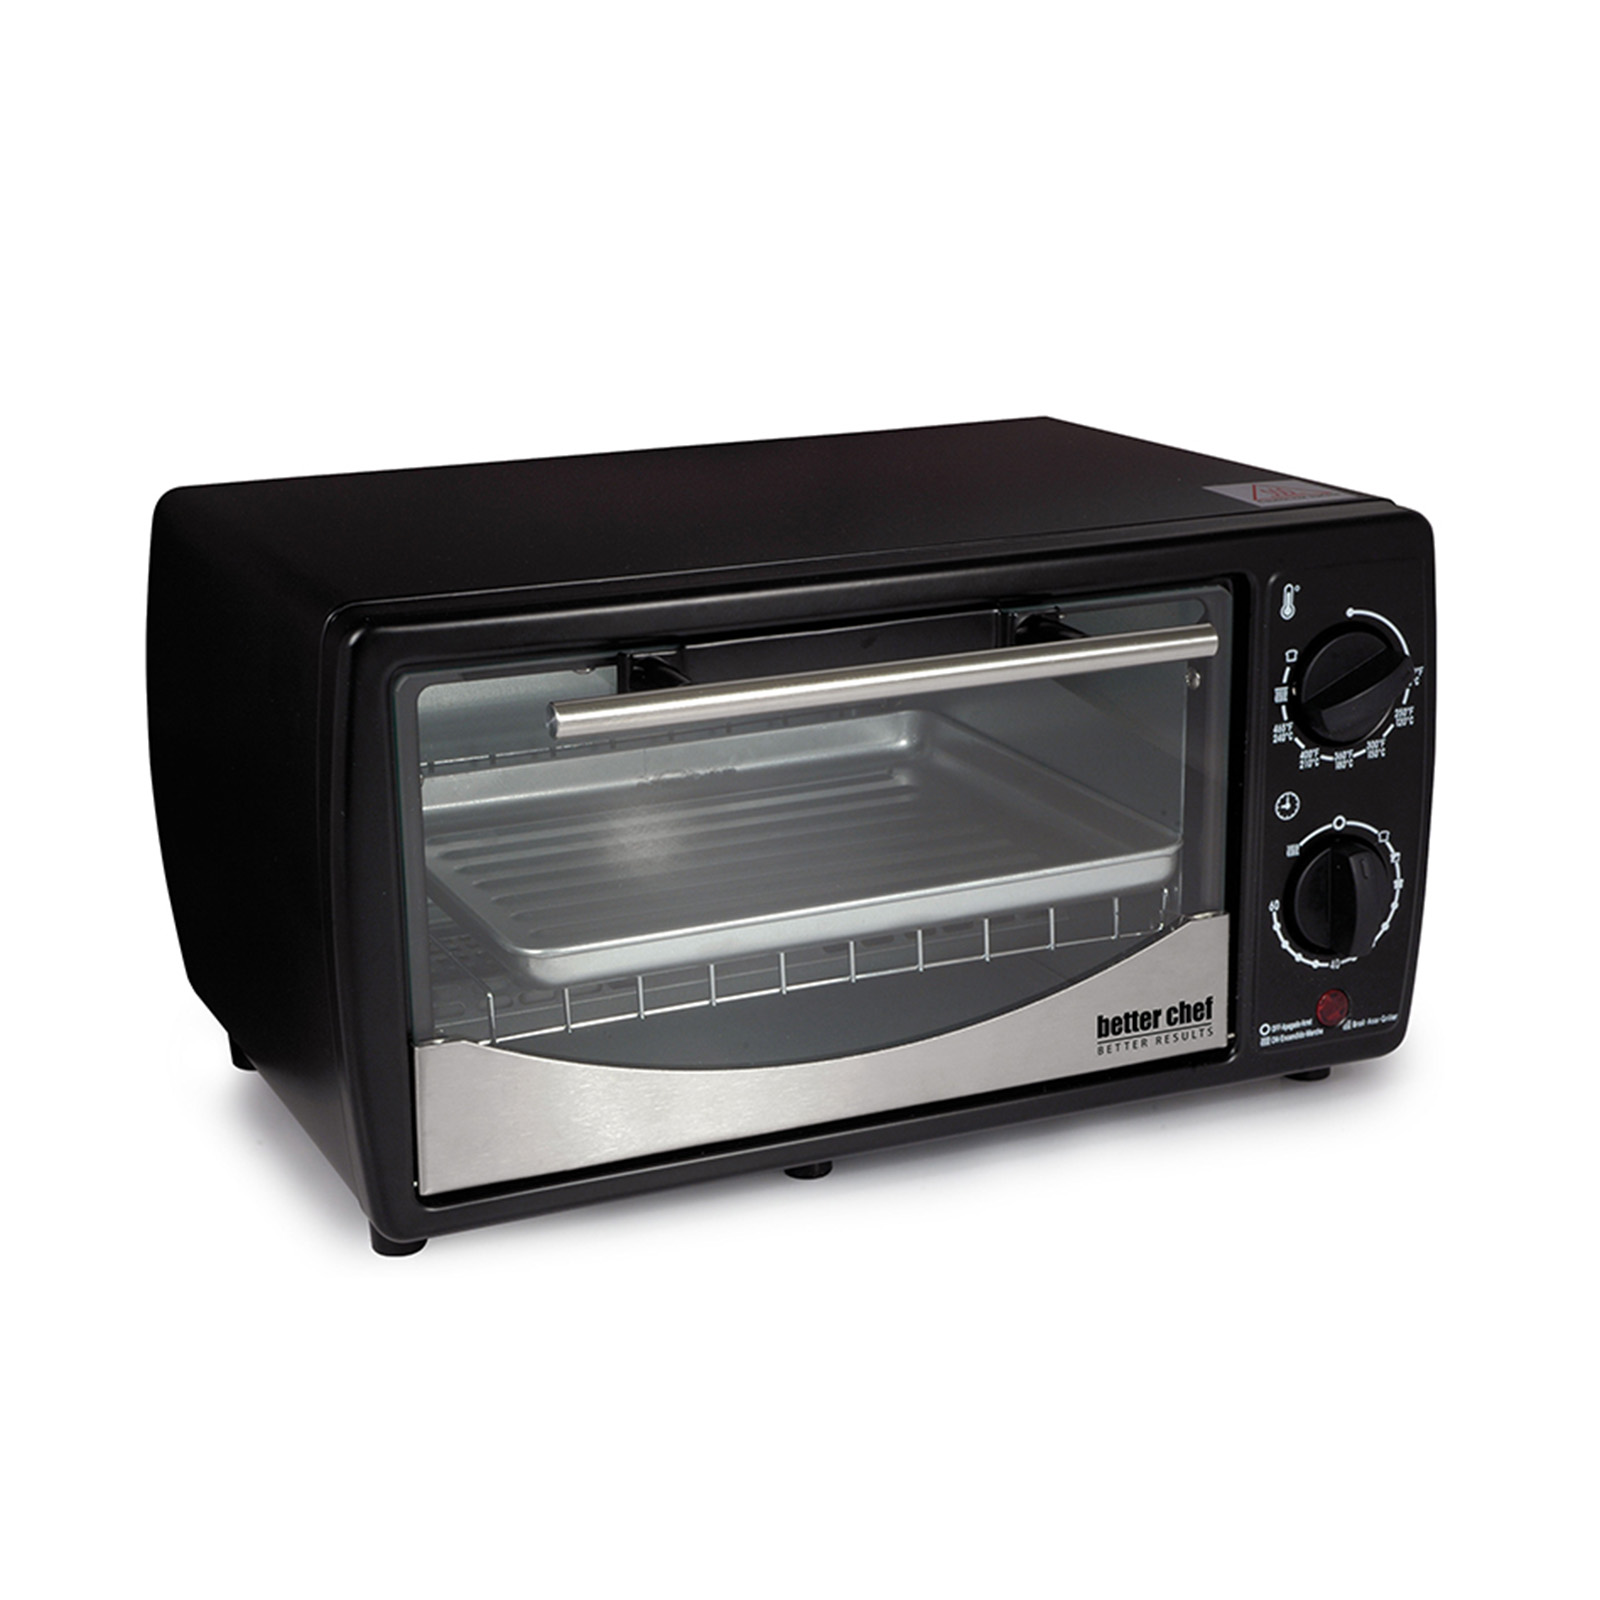 Image of Better Chef 97089571M 4-Slice Toaster Oven - Black